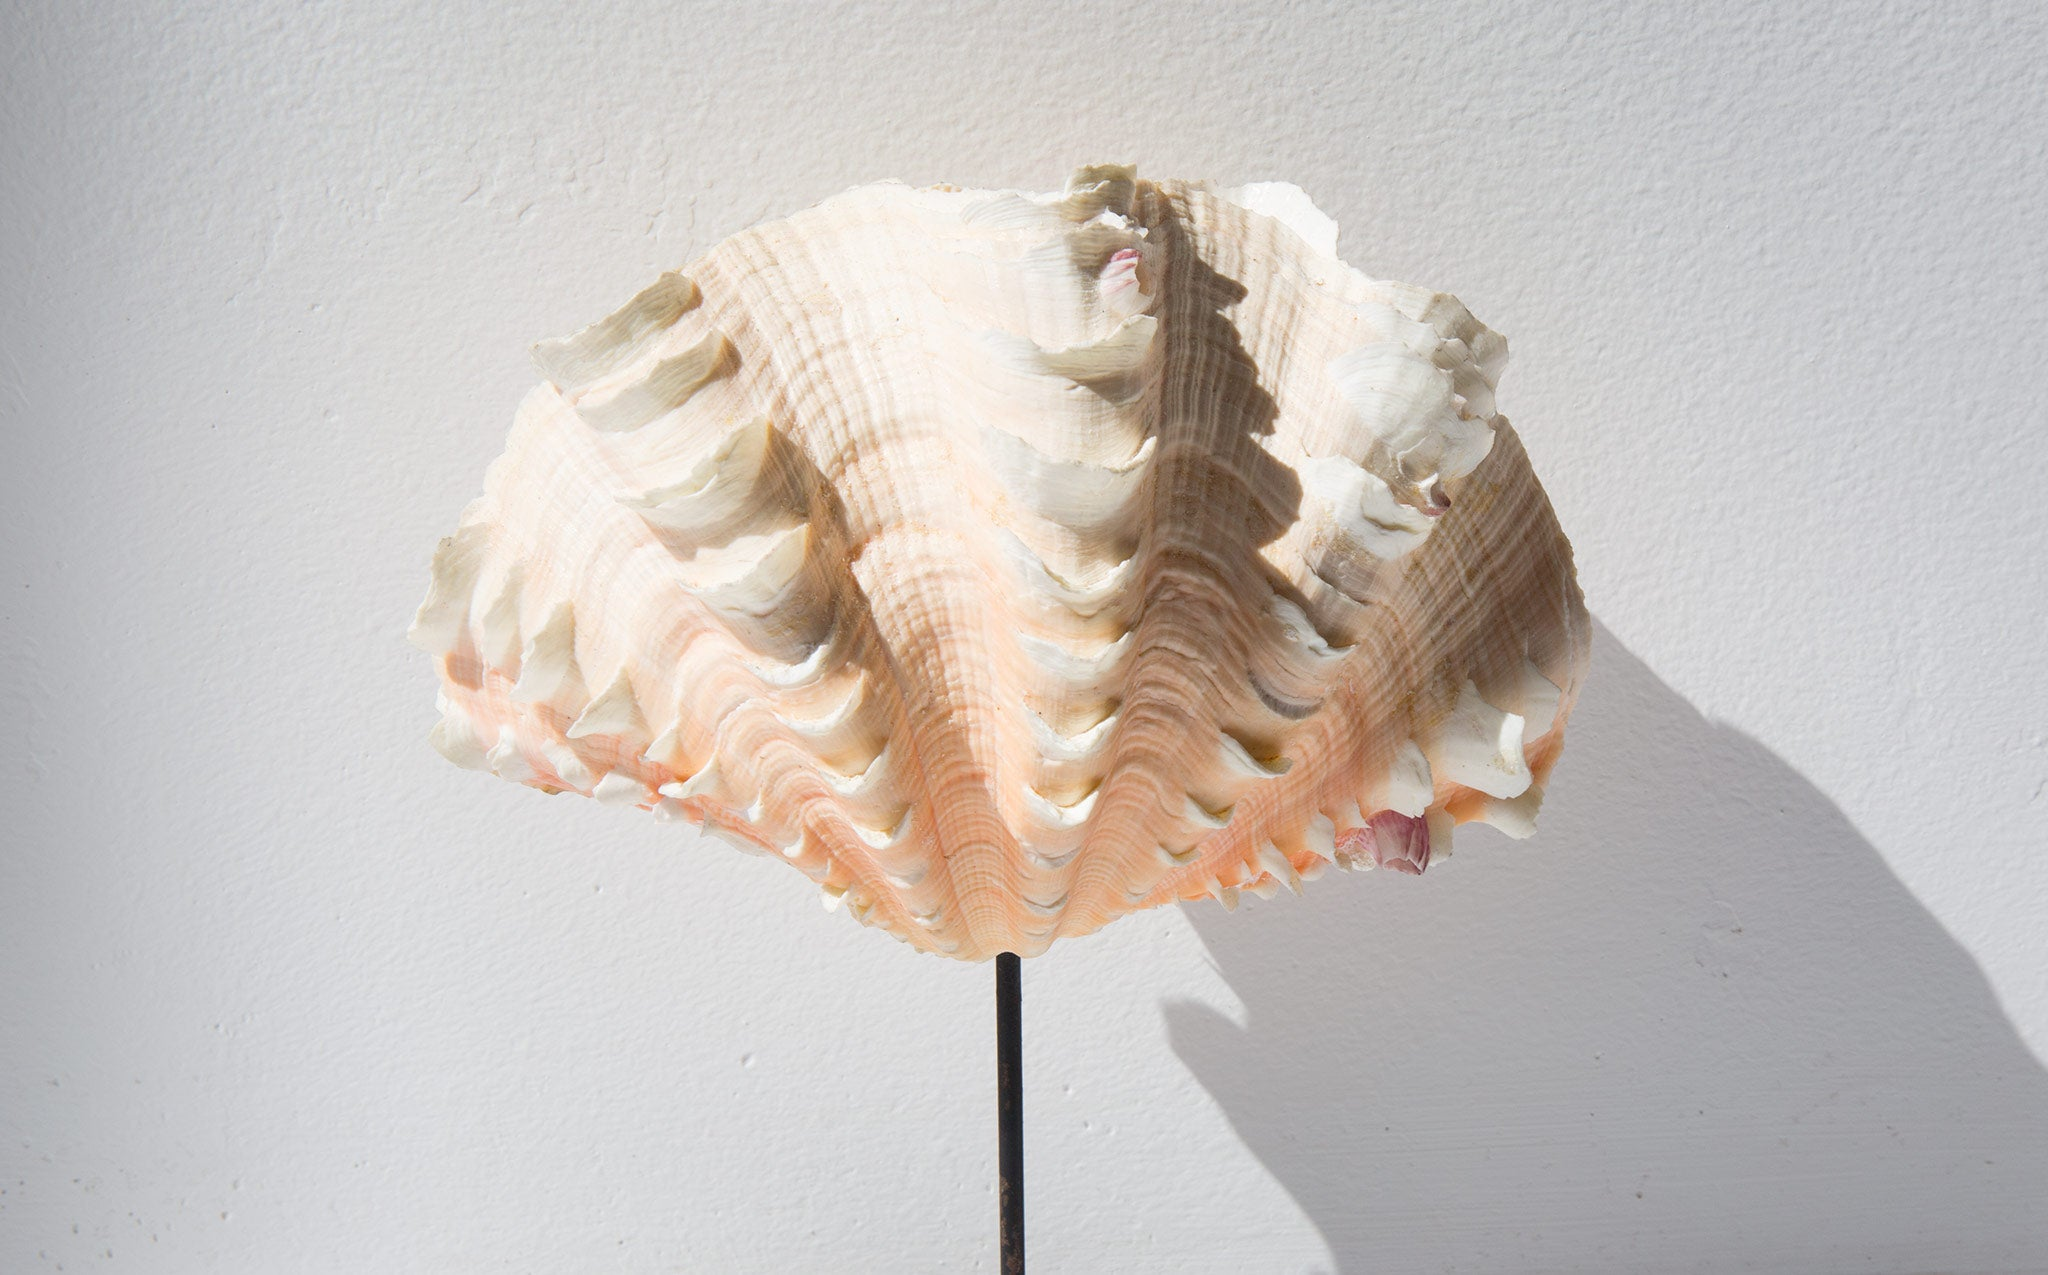 Mounted Fluted Clam Shell